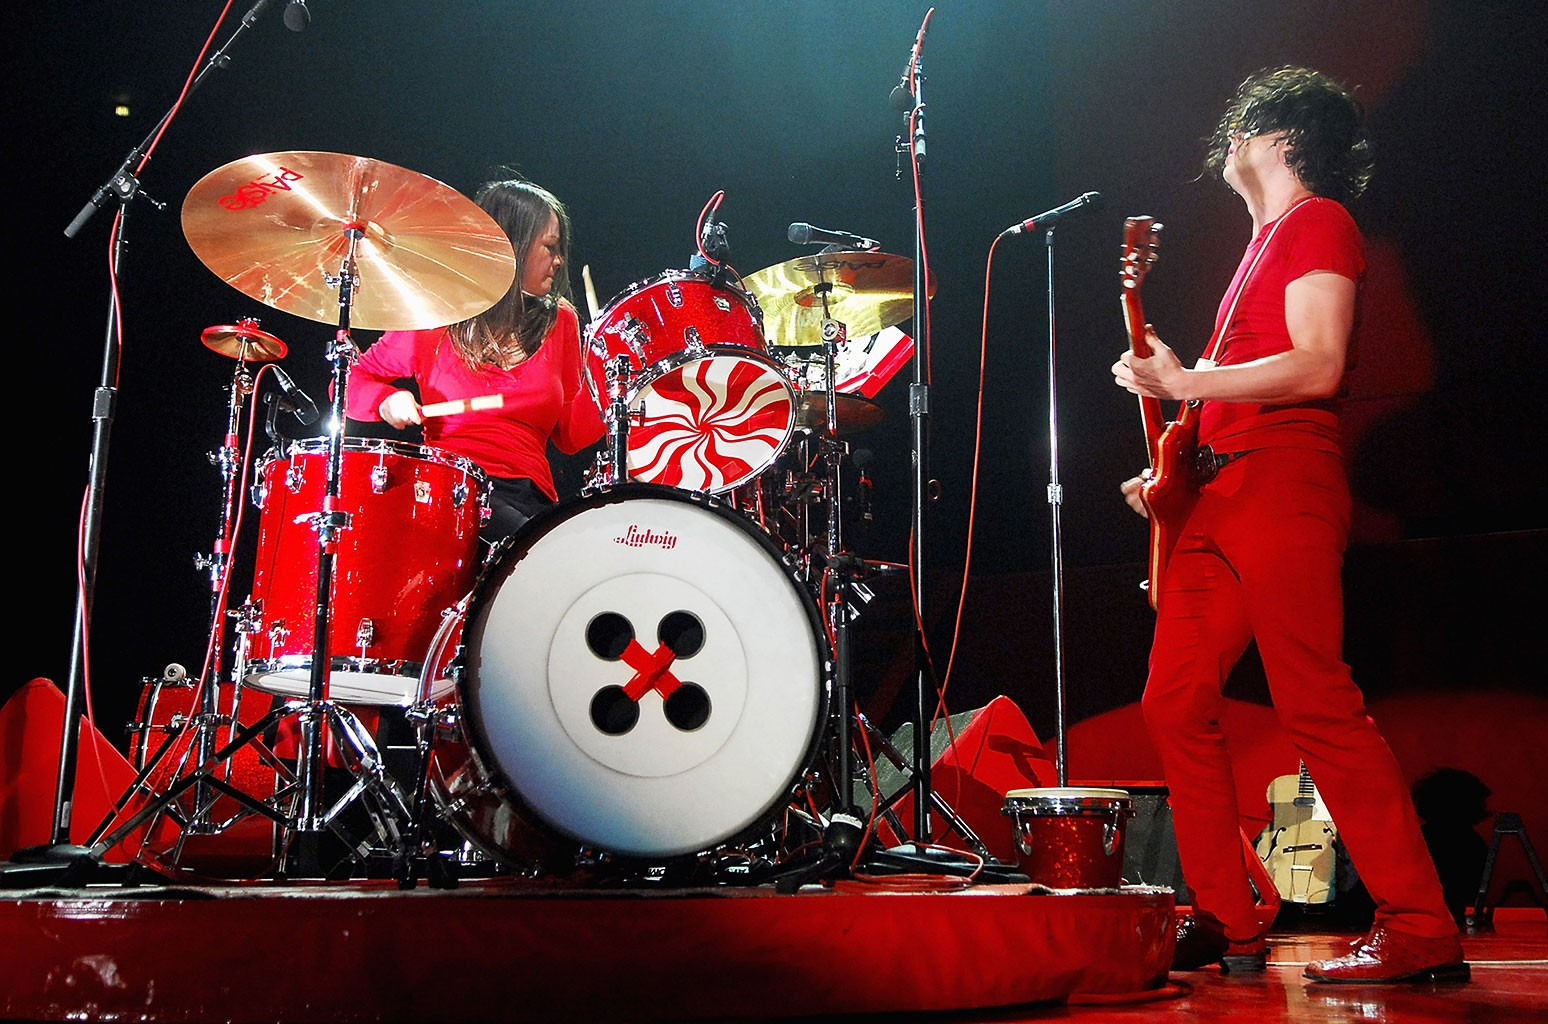 The White Stripes live on their final concert at the Snowden Grove Amphitheater in Southaven, Mississippi, 2007.